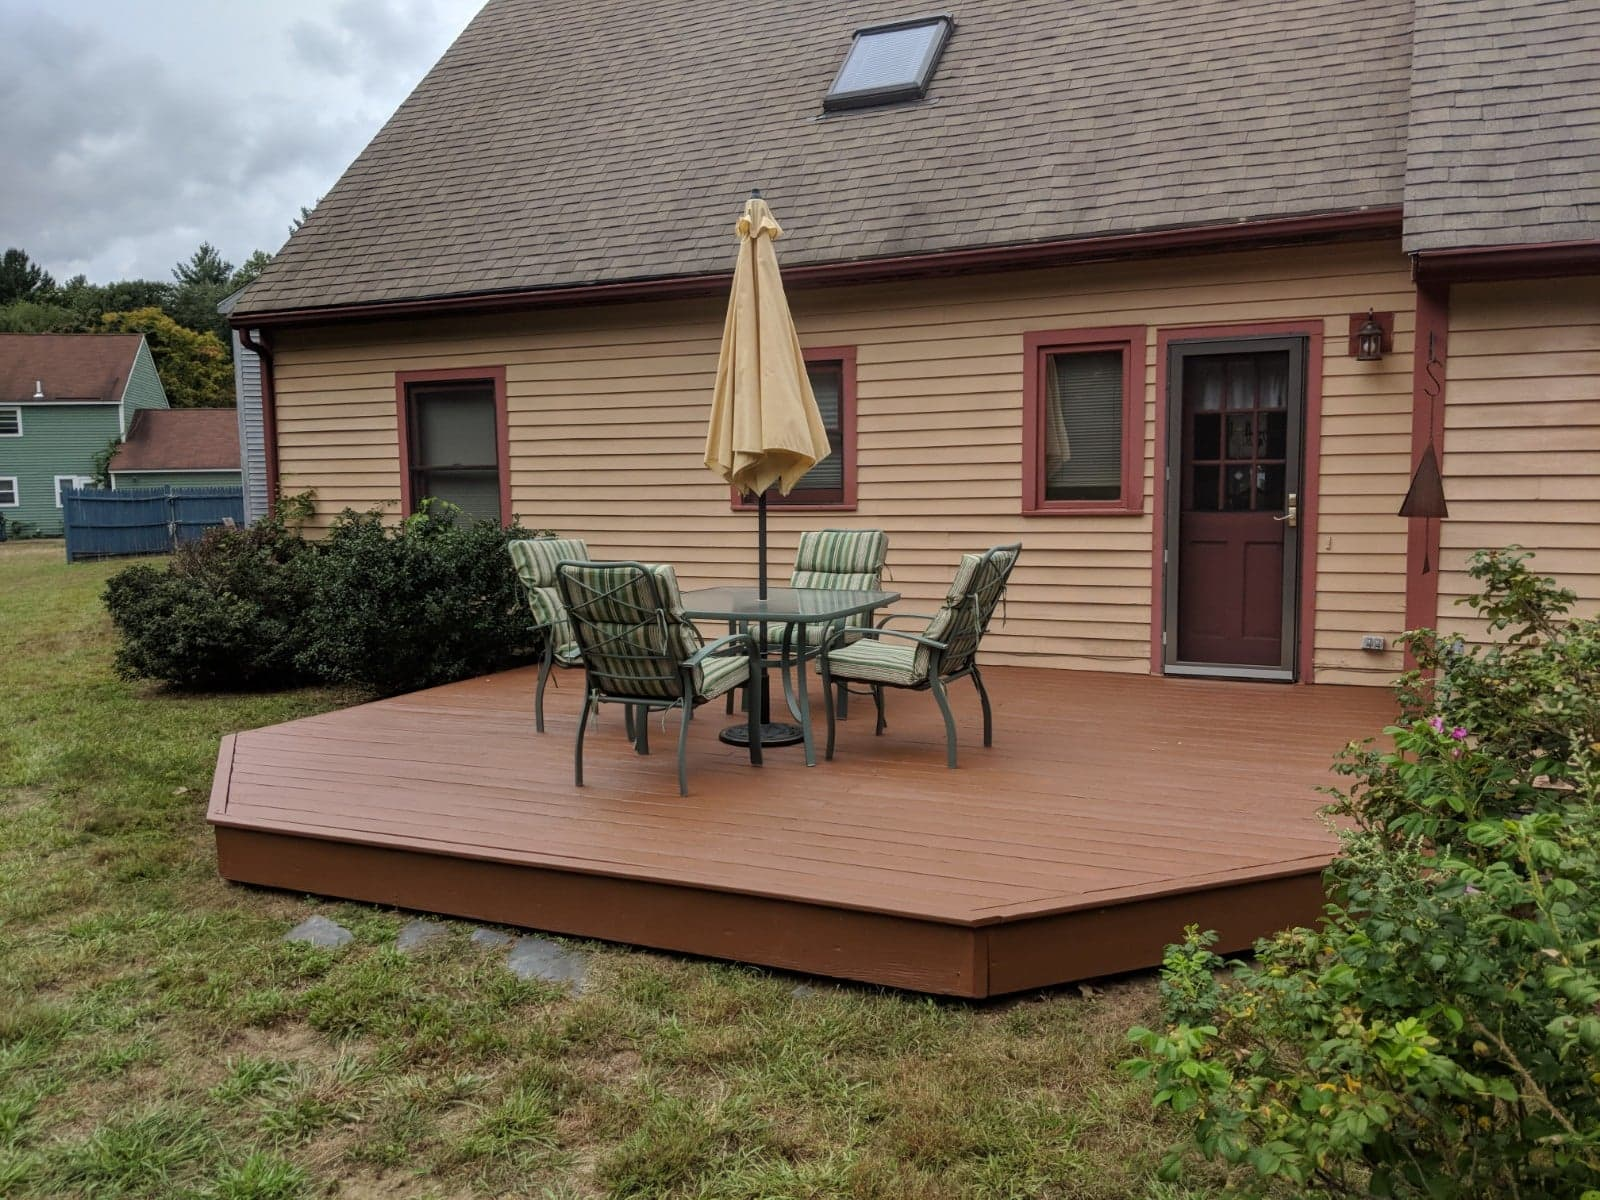 handyman services after applying new deck stain